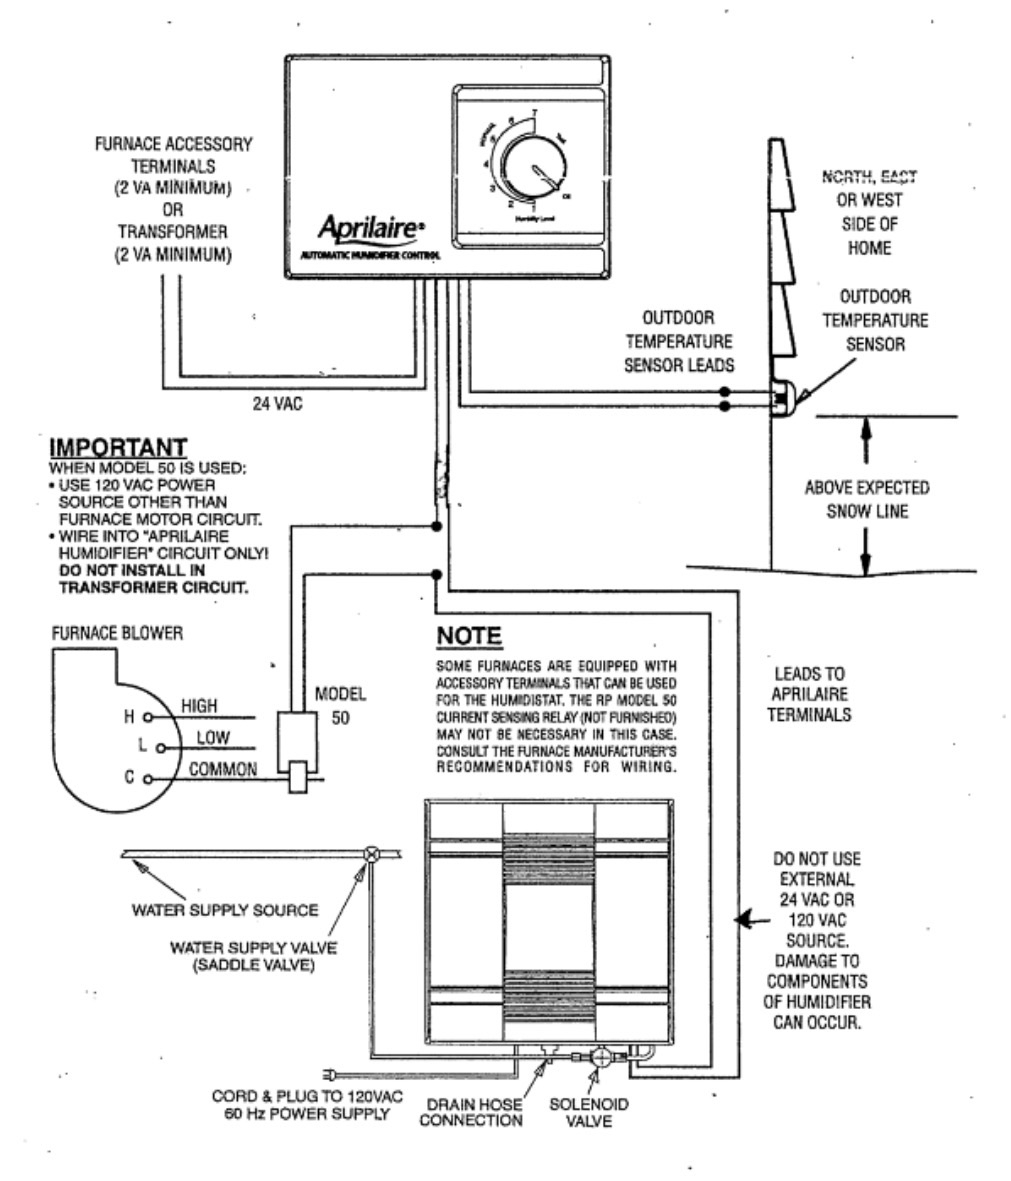 marley thermostat wiring diagram download